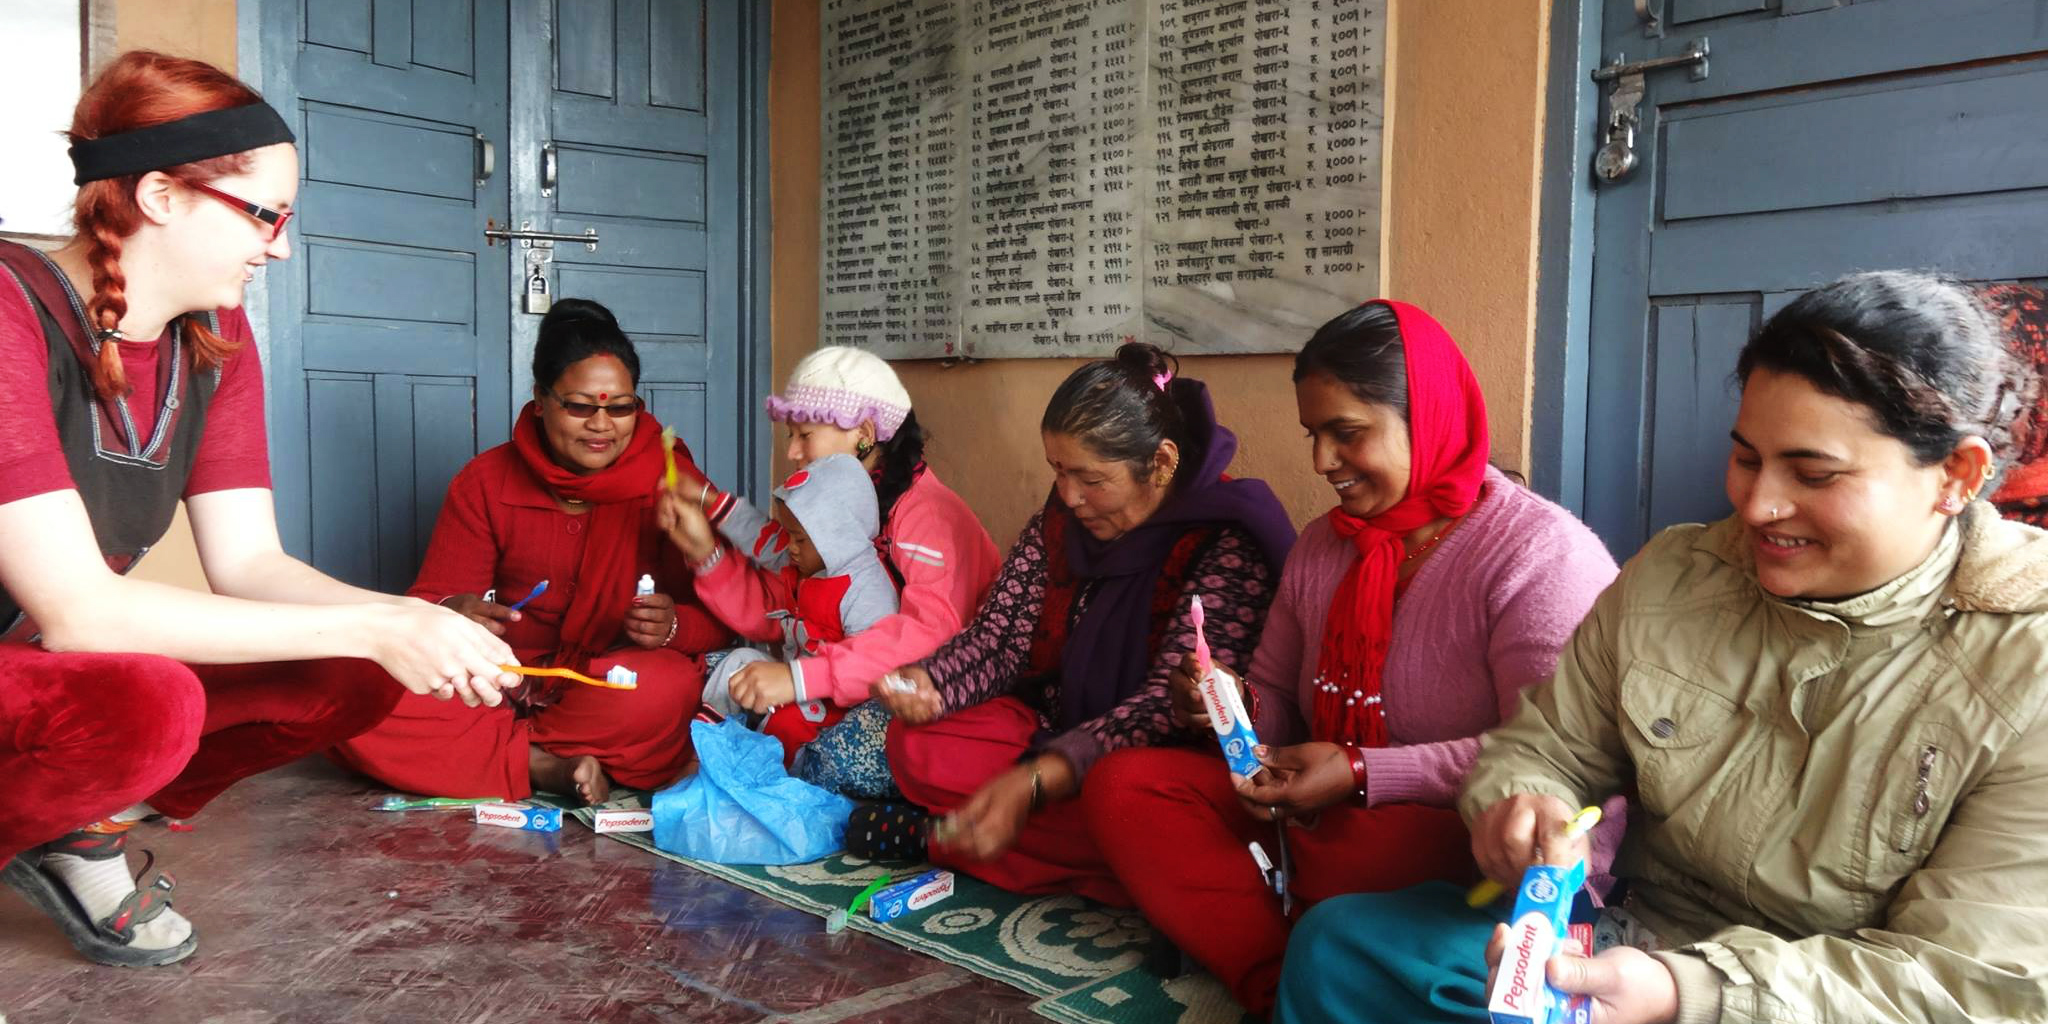 Heathcare volunteers conduct preventative healthcare workshops on toothcare in Pokhara, Nepal.